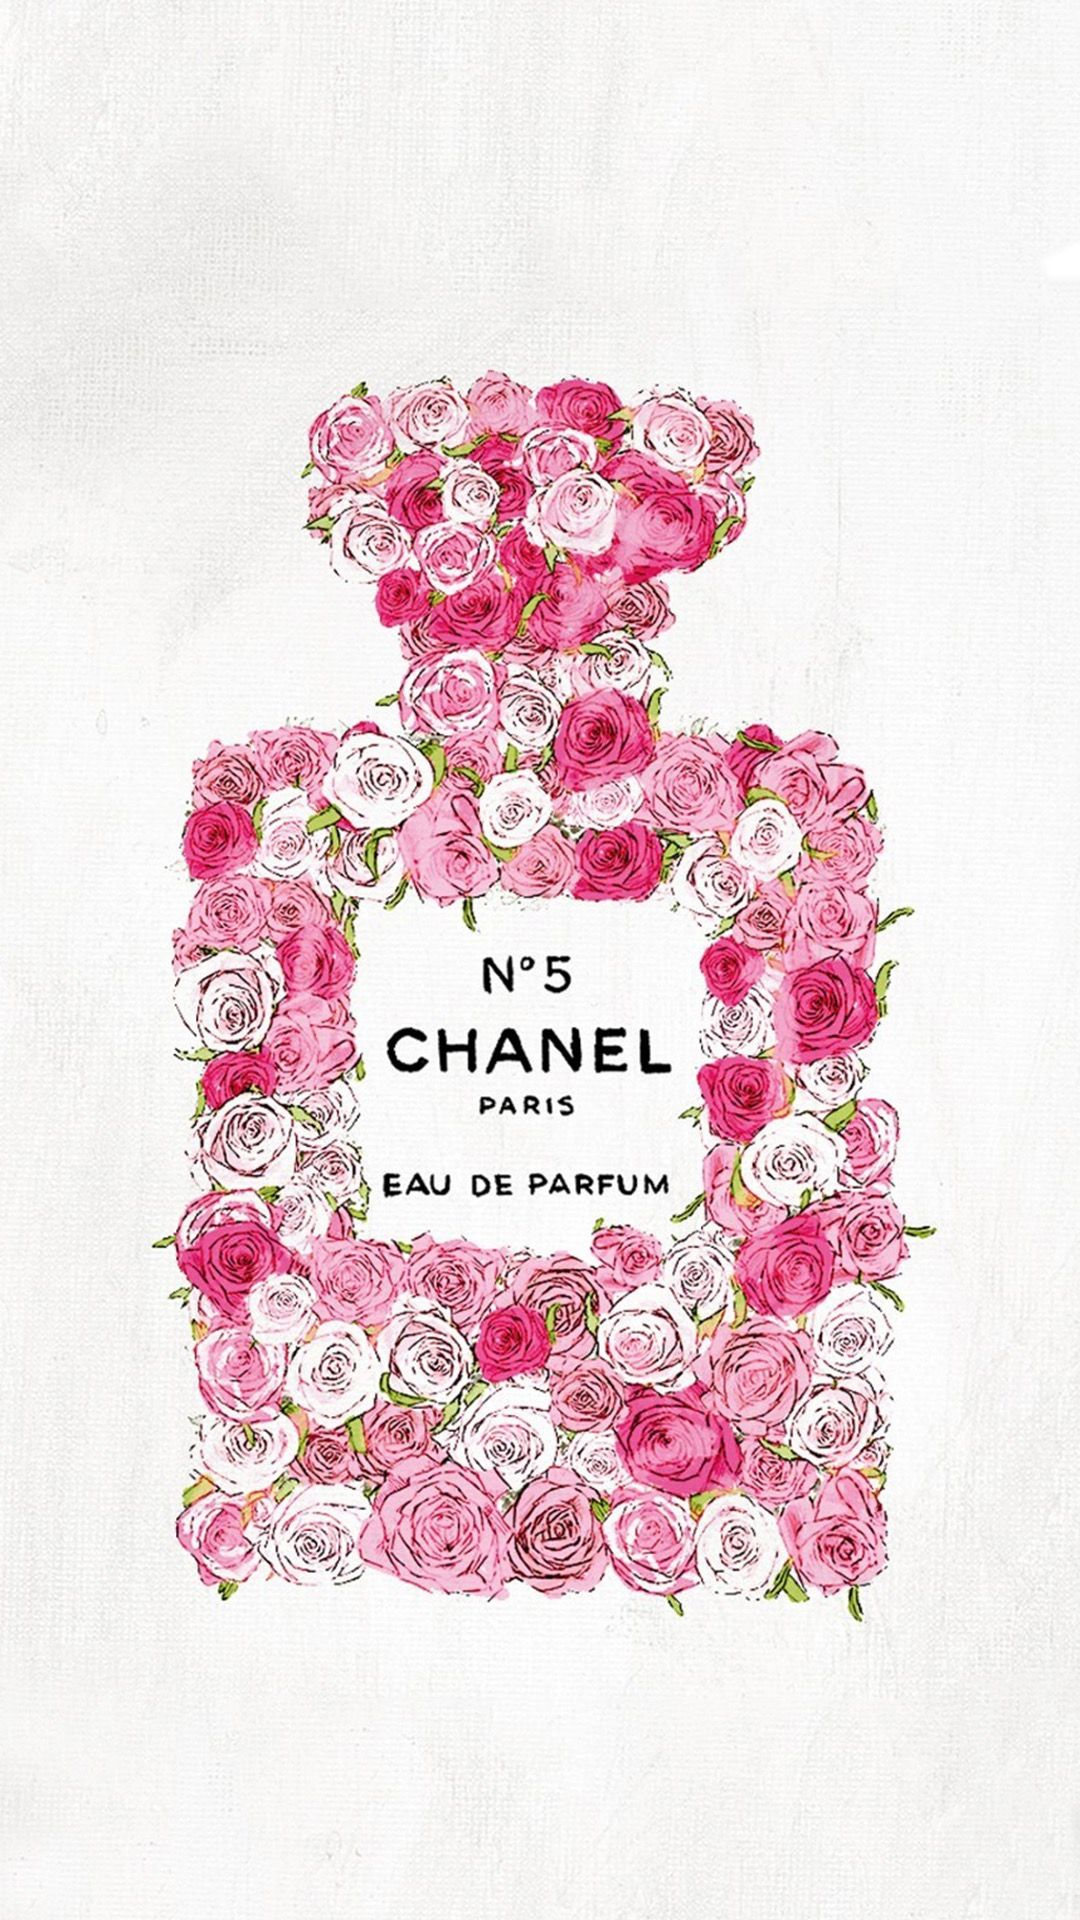 1080x1920 Chanel N°5~ | 14 Free Phone Wallpapers for the Girl Who ...